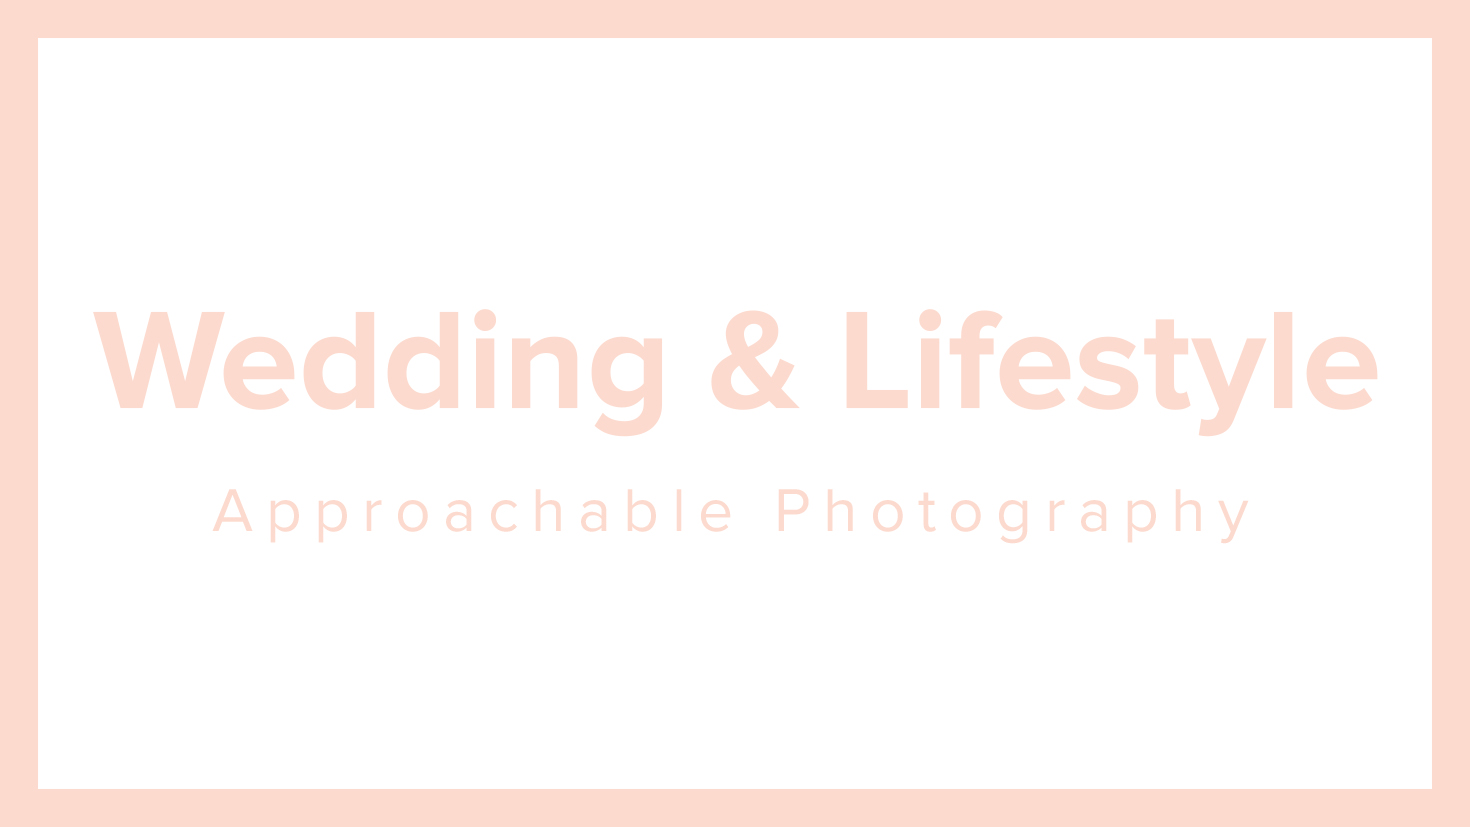 Surai Dohm Photography Wedding & Lifestyle Approachable Photography